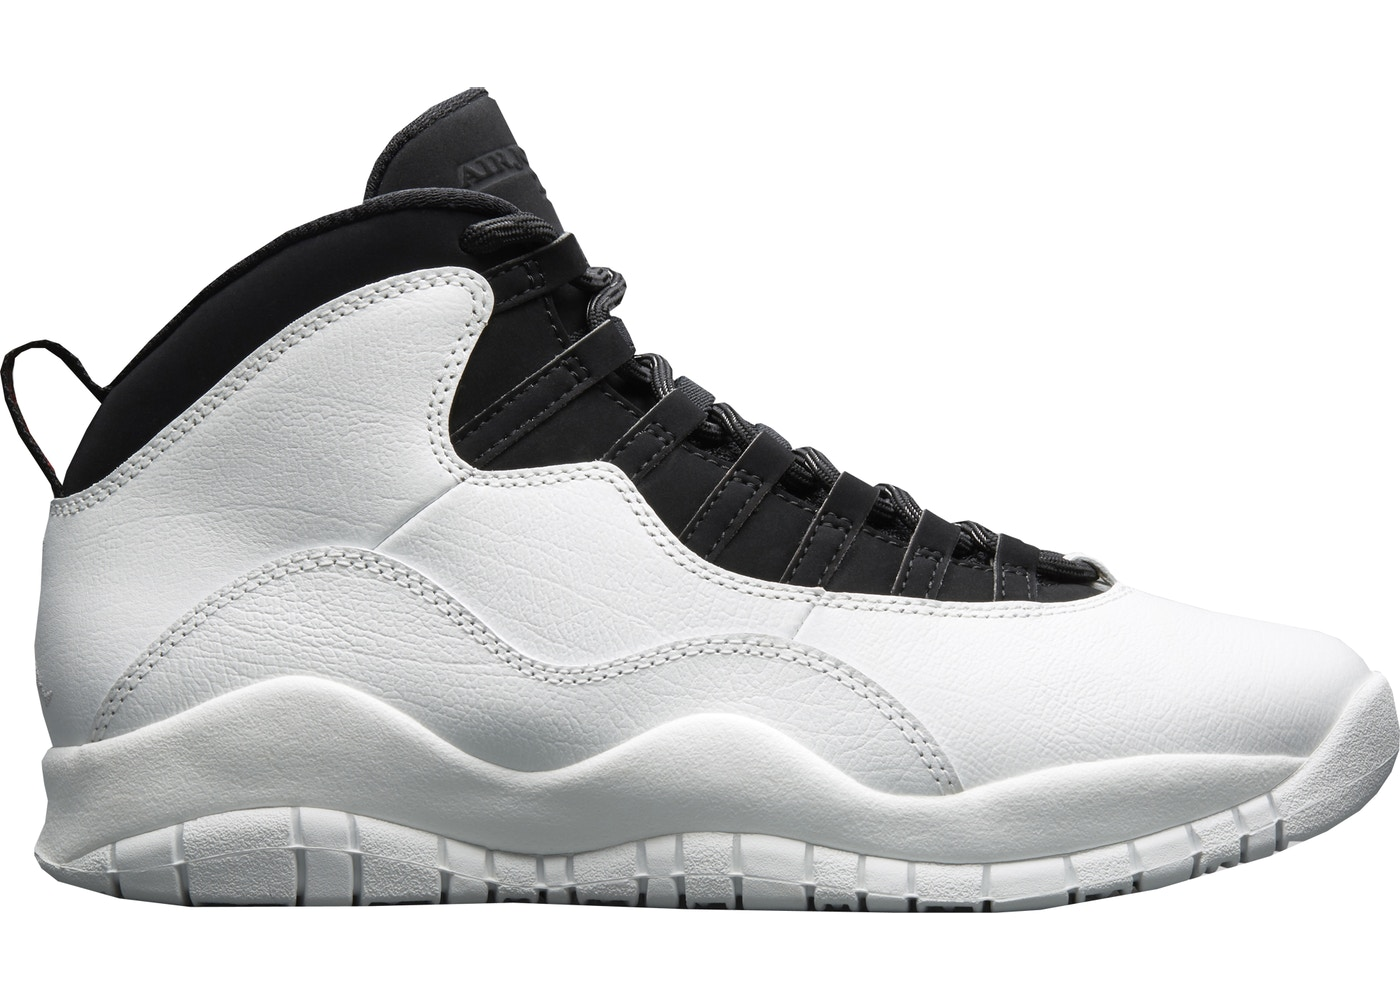 timeless design f7606 8e2f4 Jordan 10 Retro I'm Back